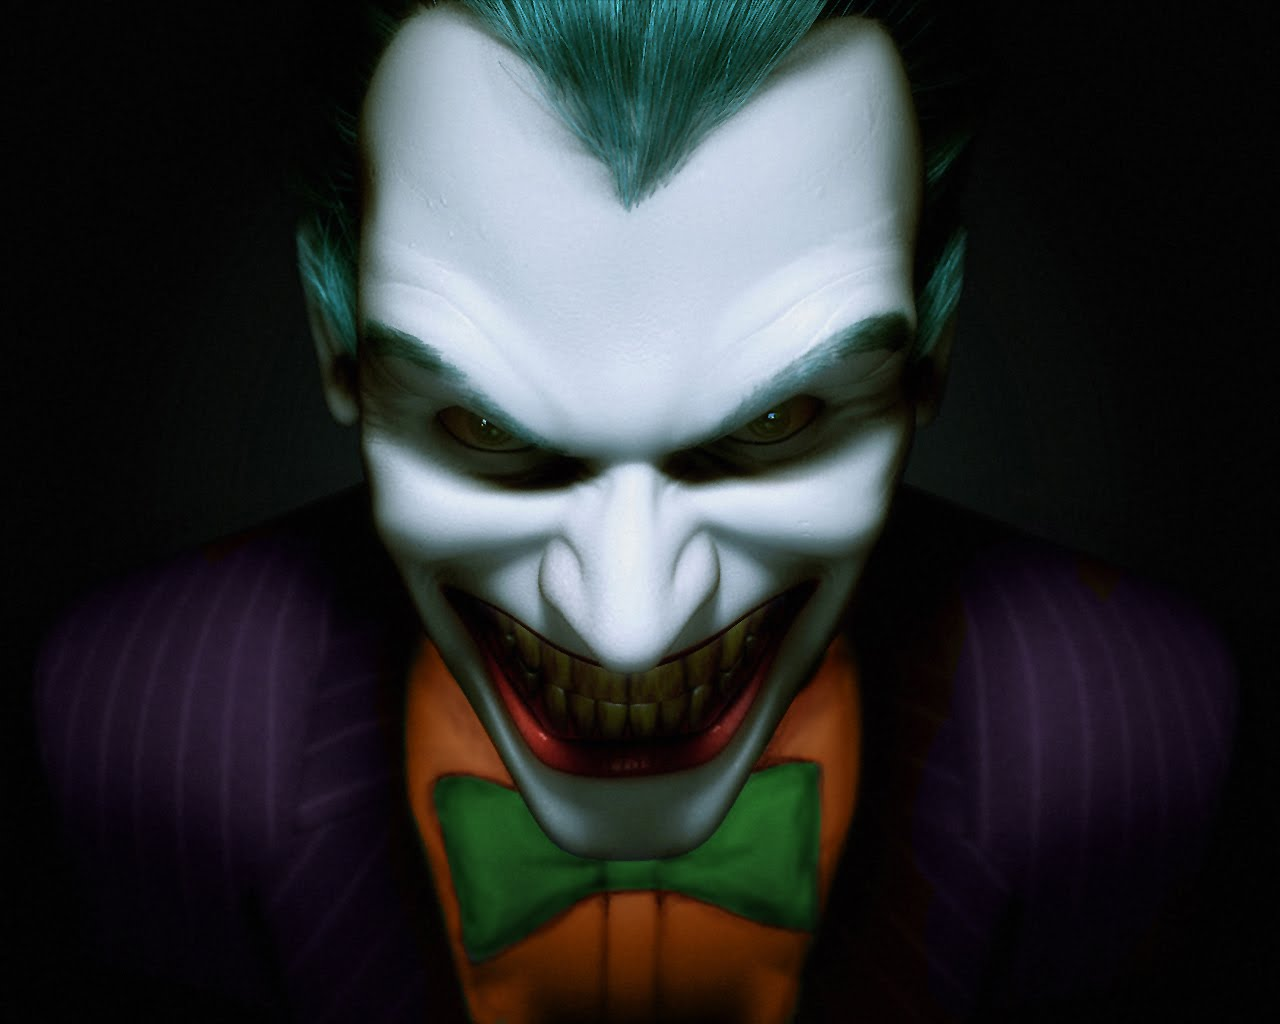 Joker photos images desktop wallpapers 1280x1024 for Joker immagini hd